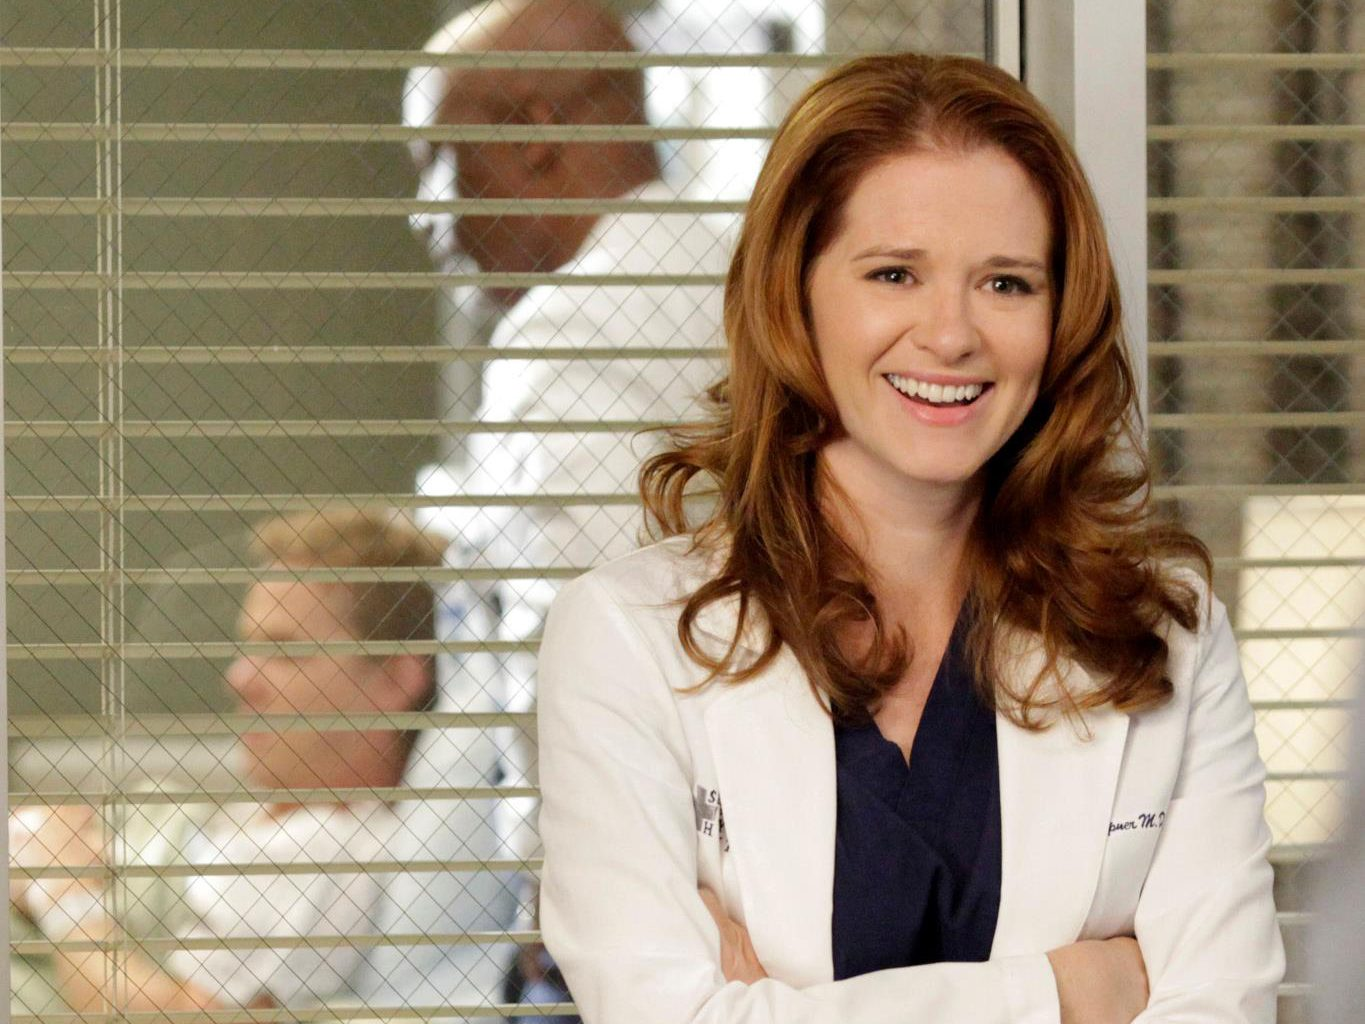 Grey's Anatomy Quotes - April Kepner